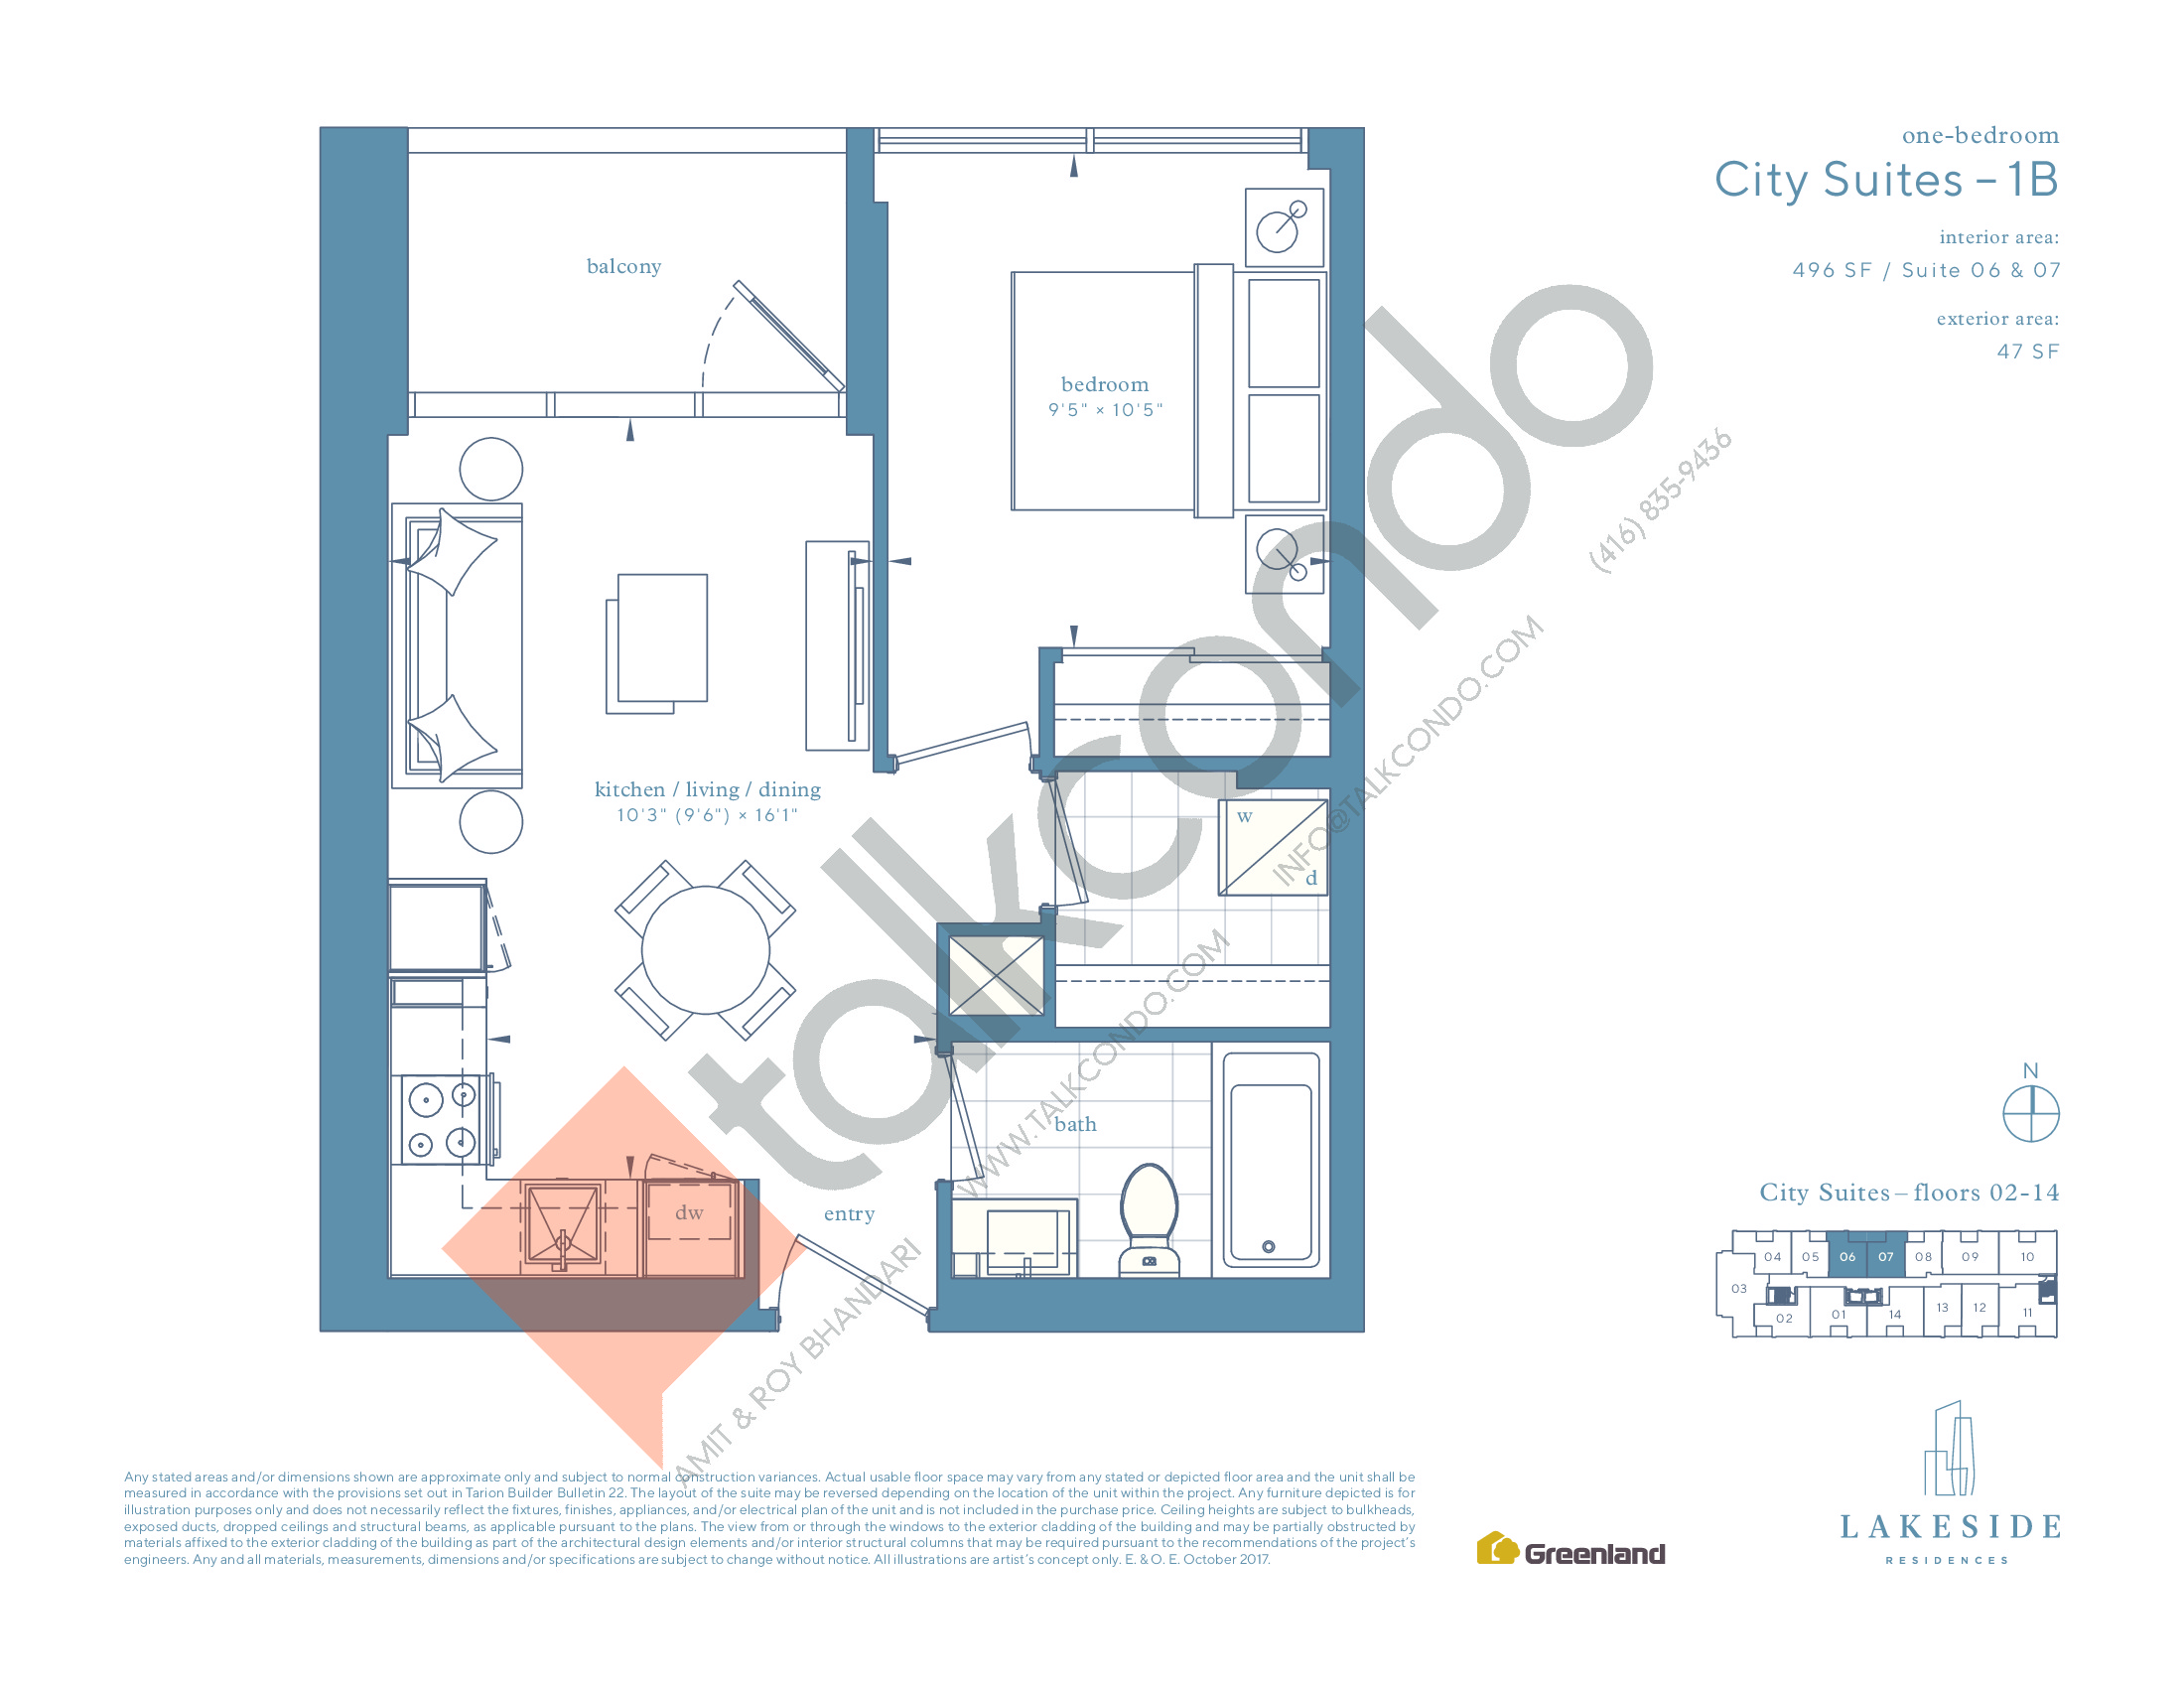 City Suites - 1B Floor Plan at Lakeside Residences - 496 sq.ft